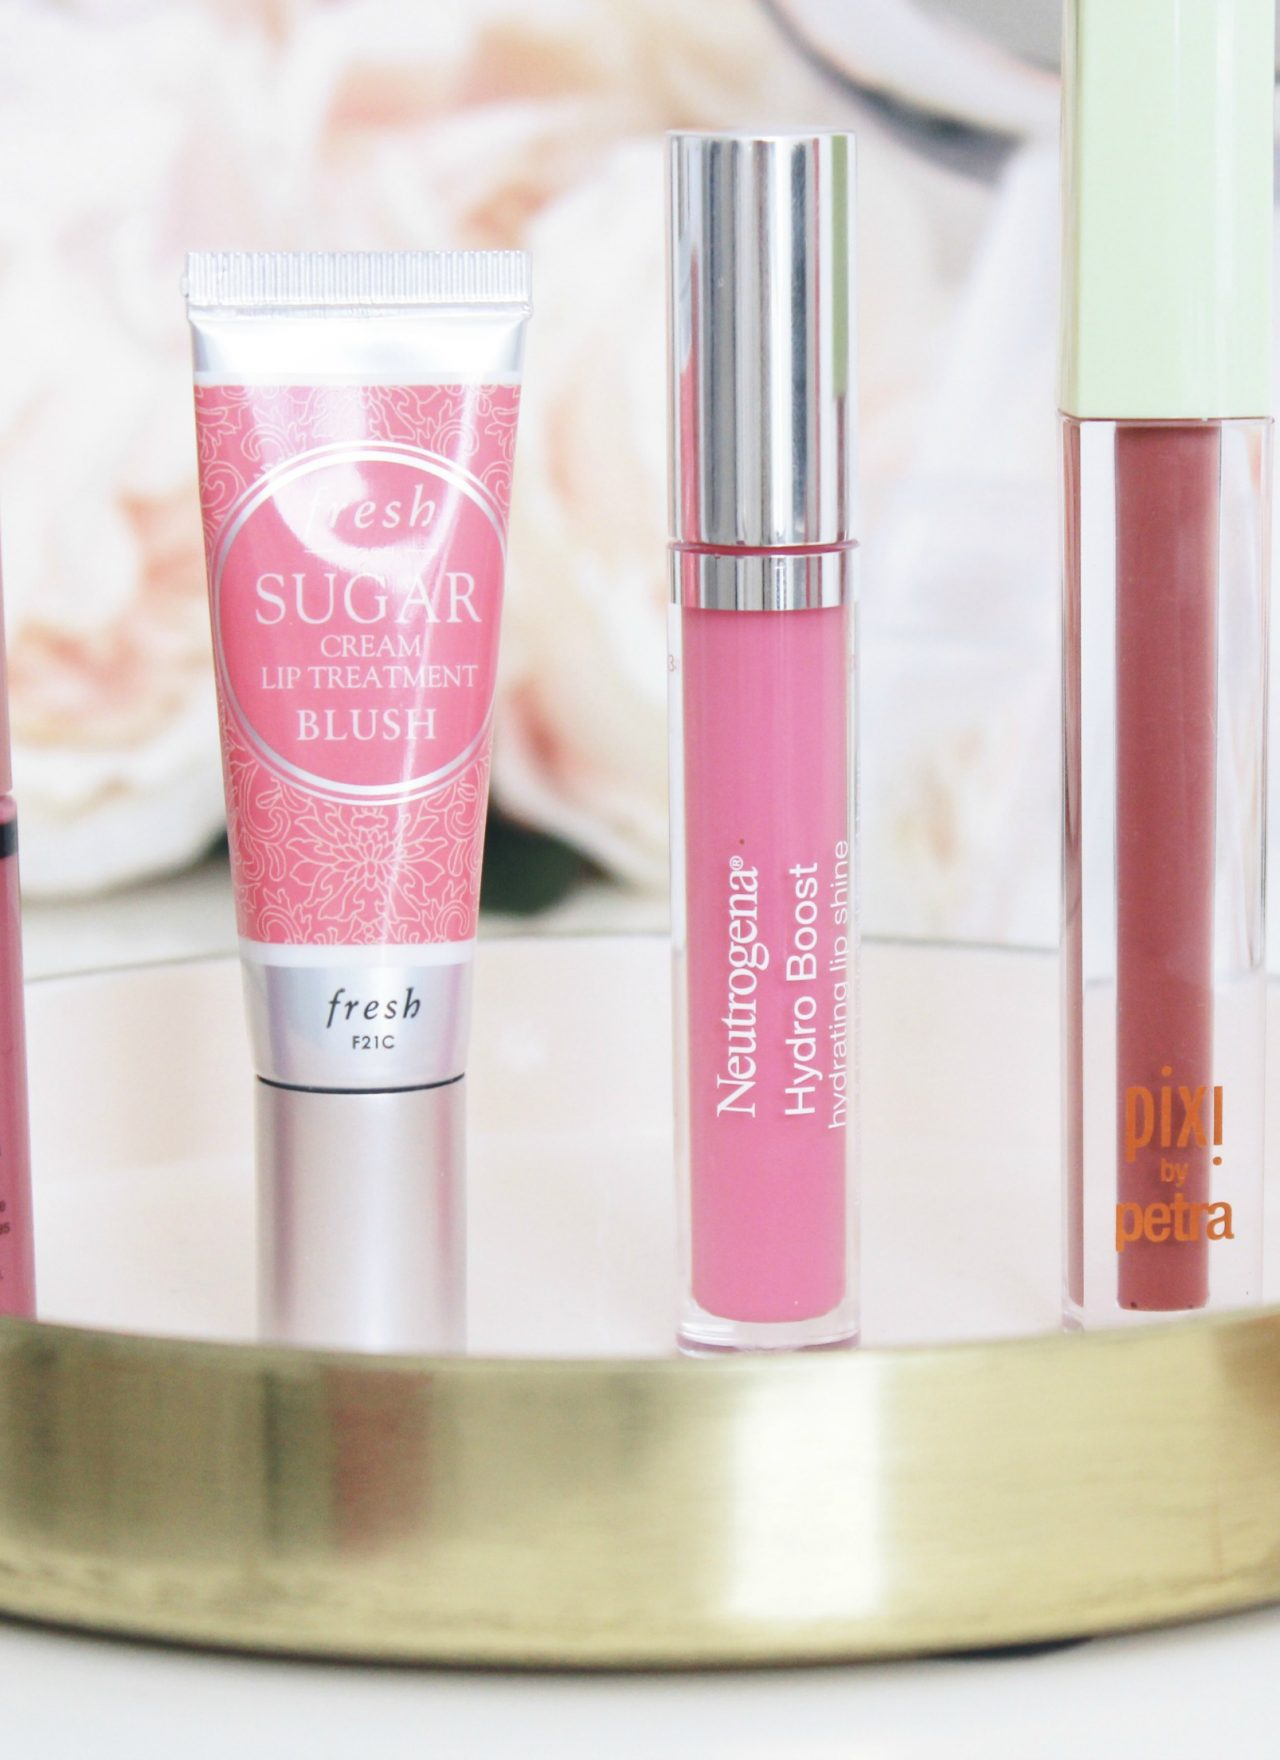 PERFECT NEUTRAL LIPGLOSS | NEUTRAL LIP GLOSS | THE BEST NEUTRAL LIPGLOSS | THE BEST LIPGLOSS FOR VALENTINES DAY | THE BEST PINK LIPGLOSS | KISSABLE LIP GLOSS | #valentinesday #valentines